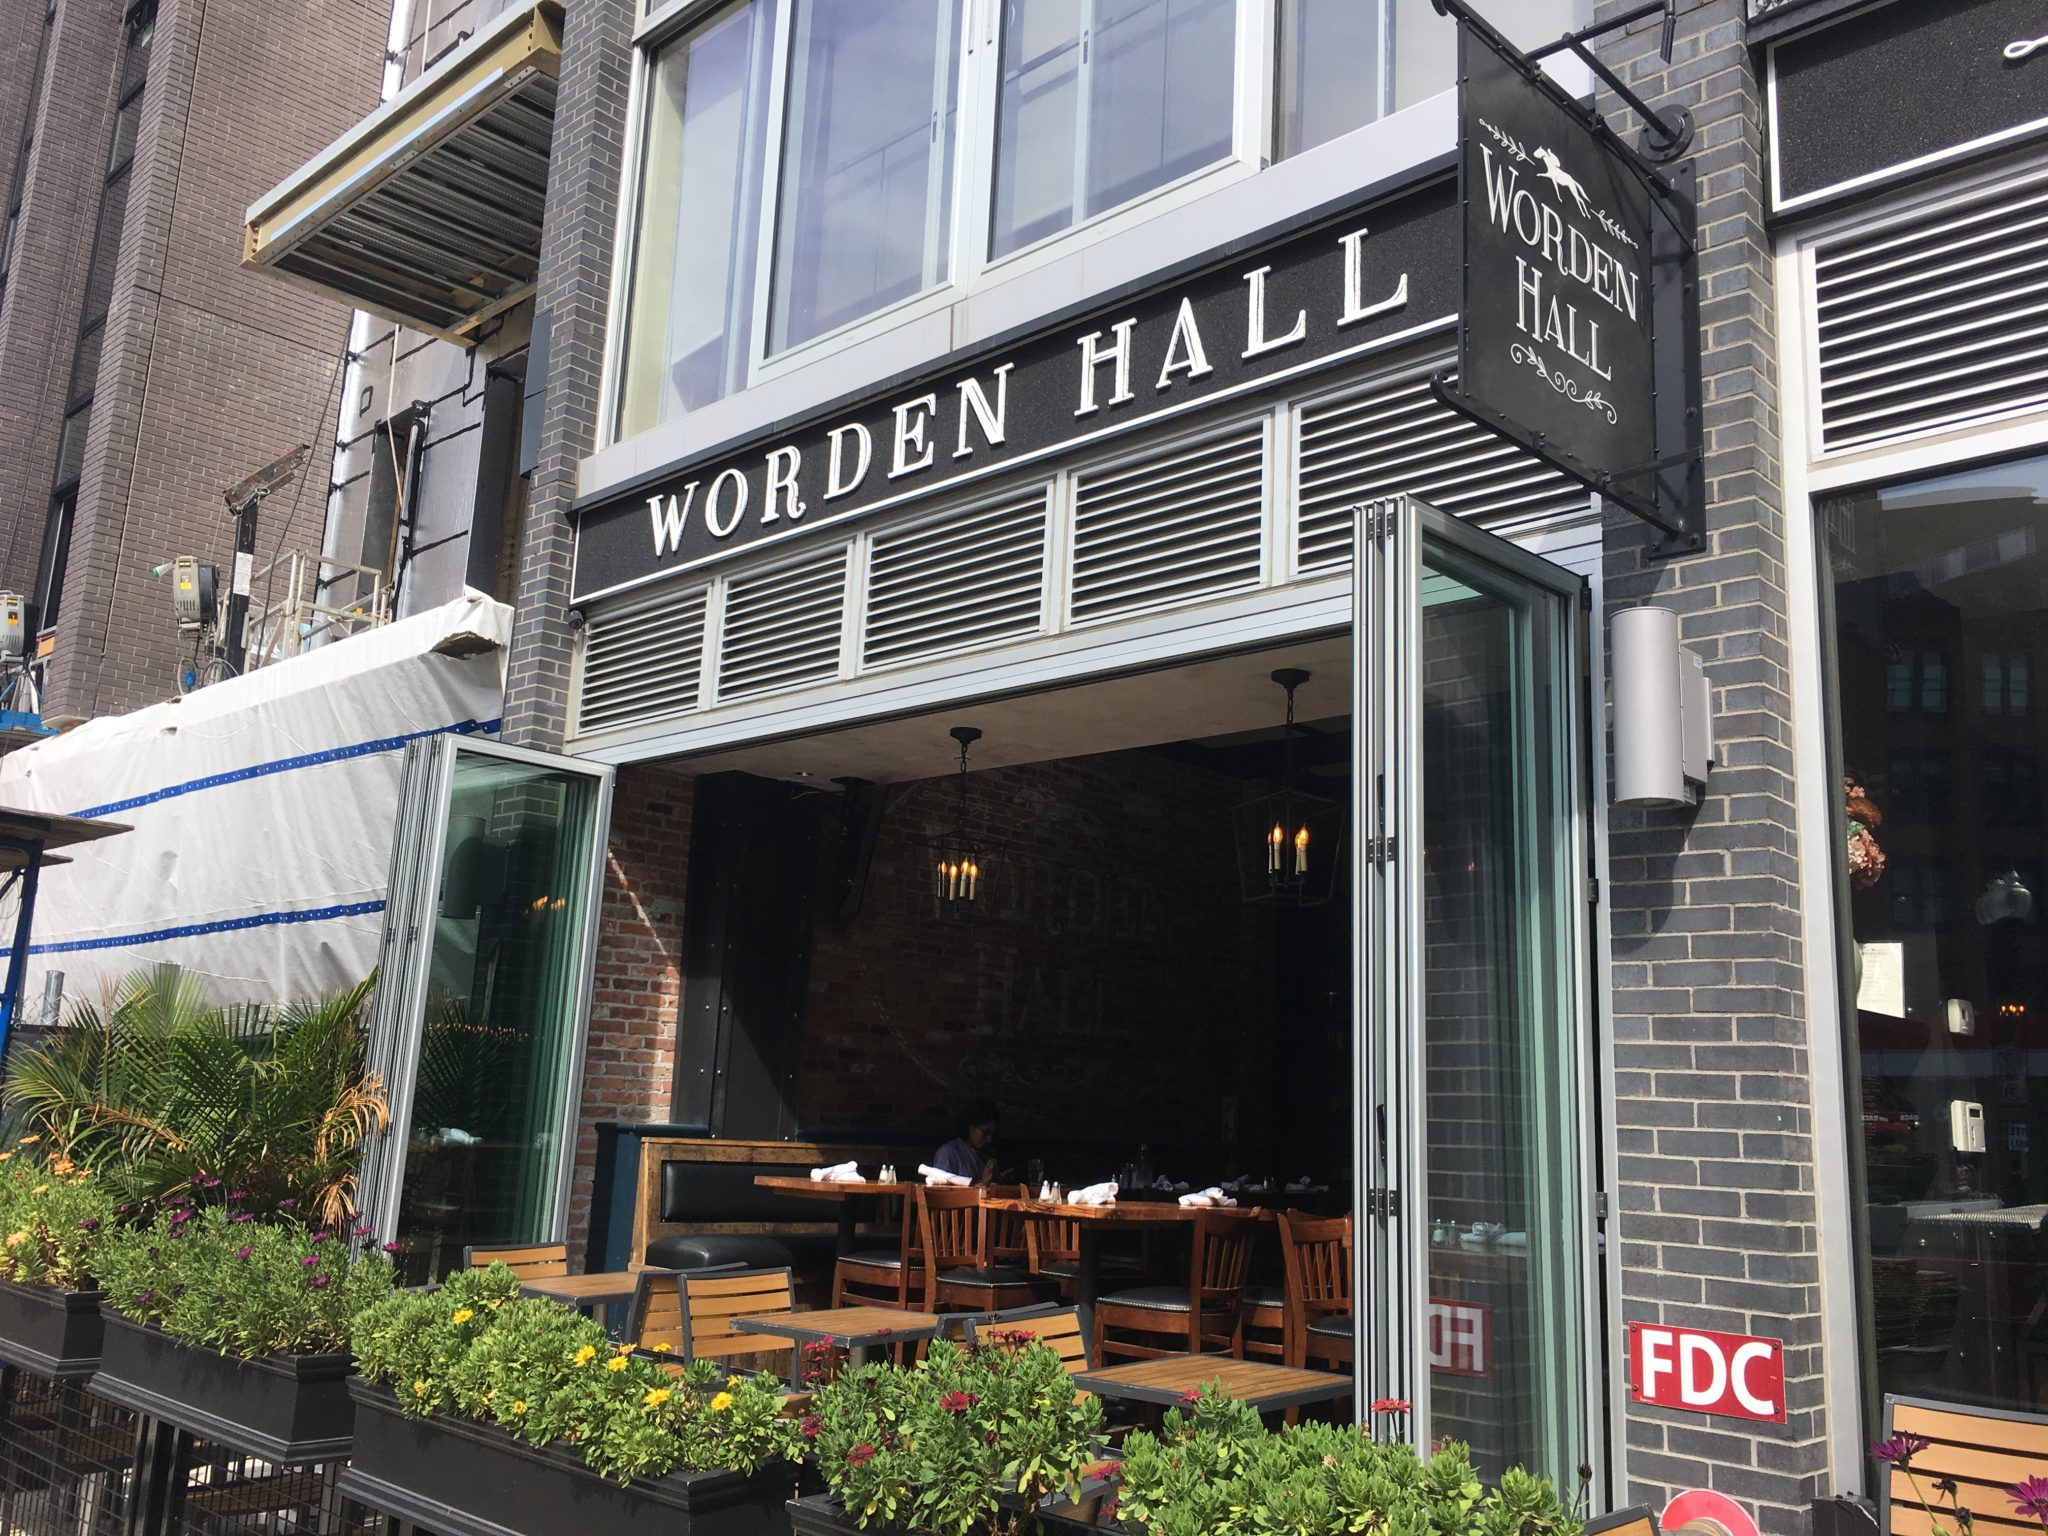 Stop into Worden Hall for delicious meal in South Boston. Visit them for lunch, dinner or brunch, this restaurant in southie is sure to please